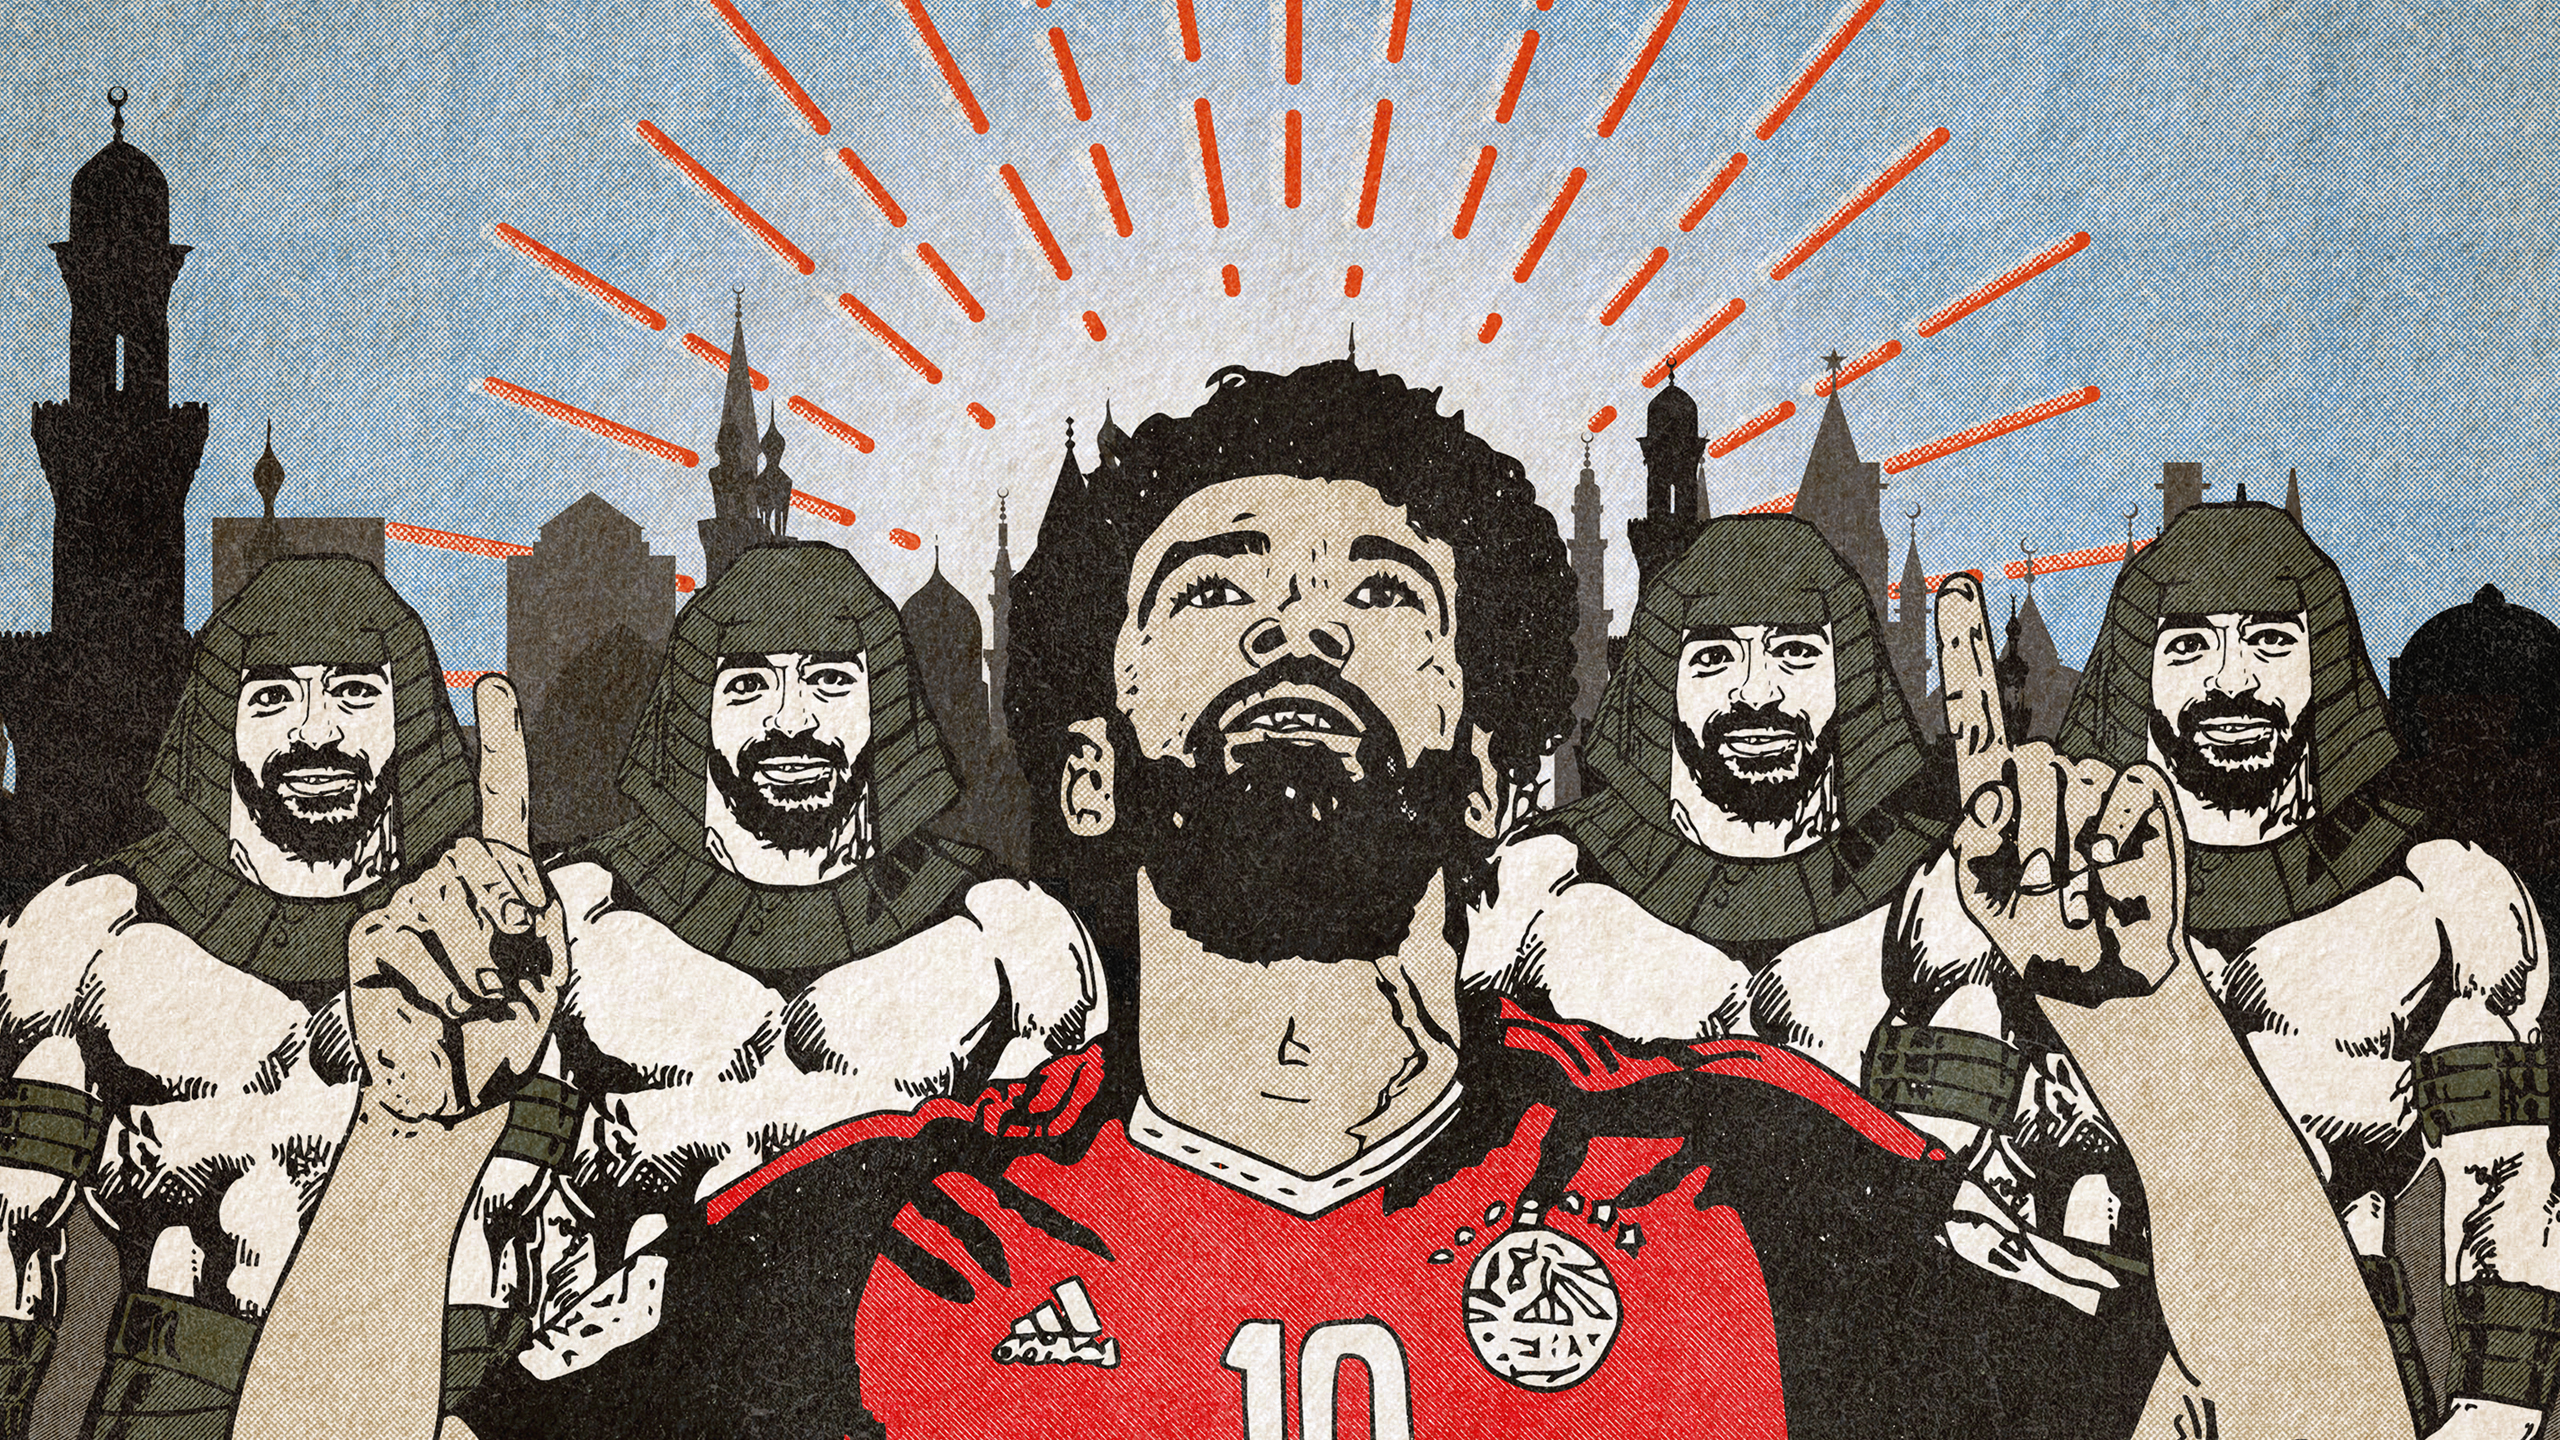 Mohamed Salah: The Prince of Egypt